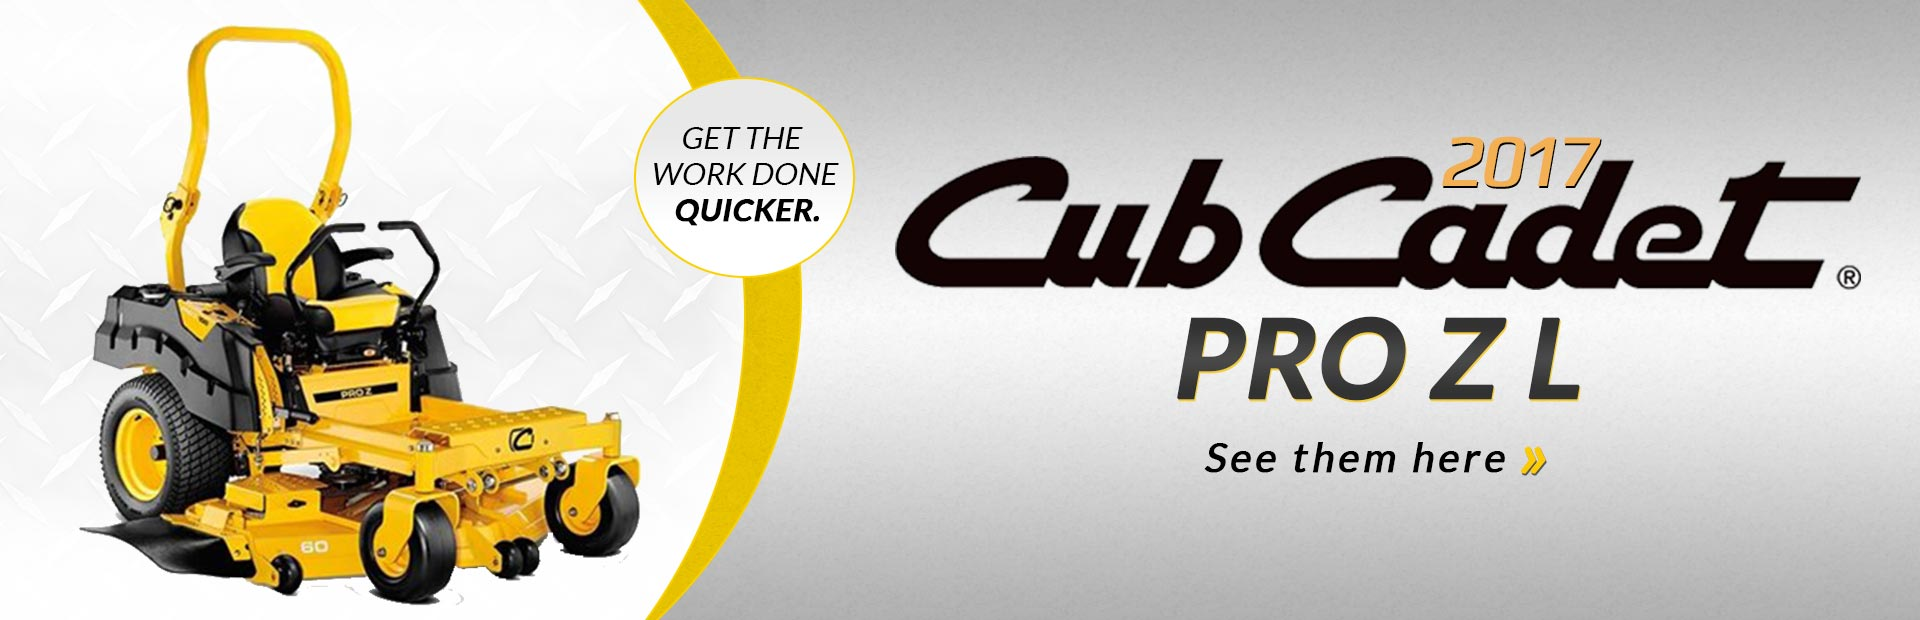 2017 Cub Cadet Pro Z L Series Lawn Mowers: Click here to view the models.